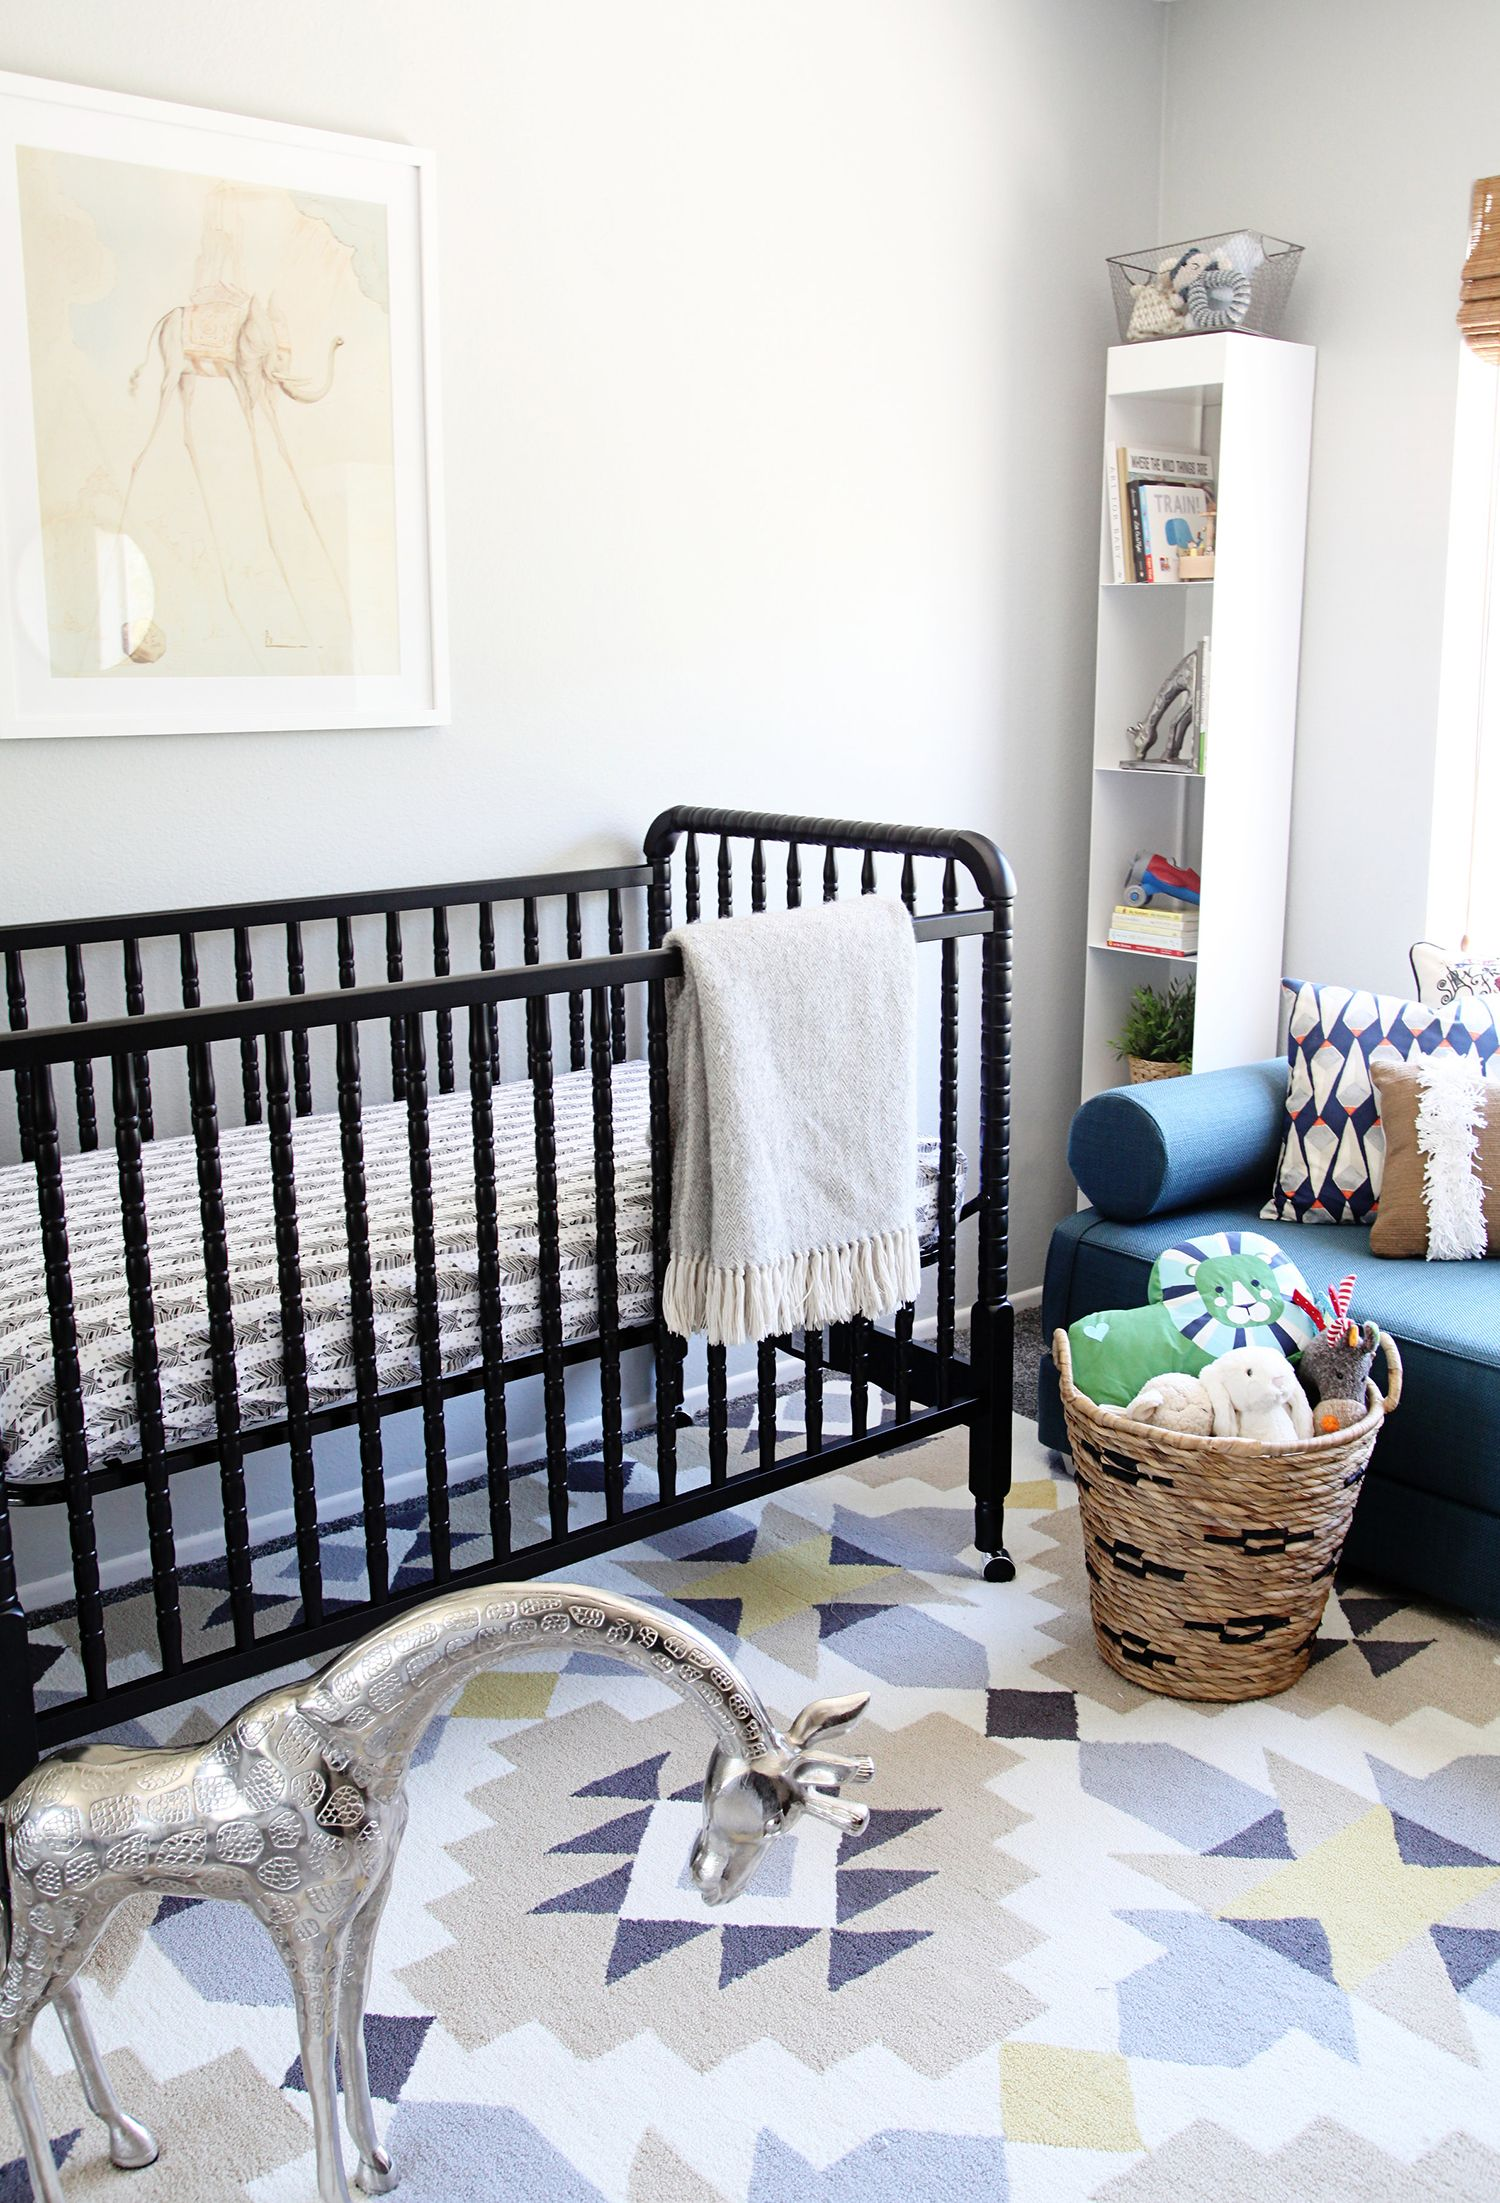 Nursery Rugs Come In Many Diffe Shapes And Sizes However Consumers Ear To Have Trouble Selecting